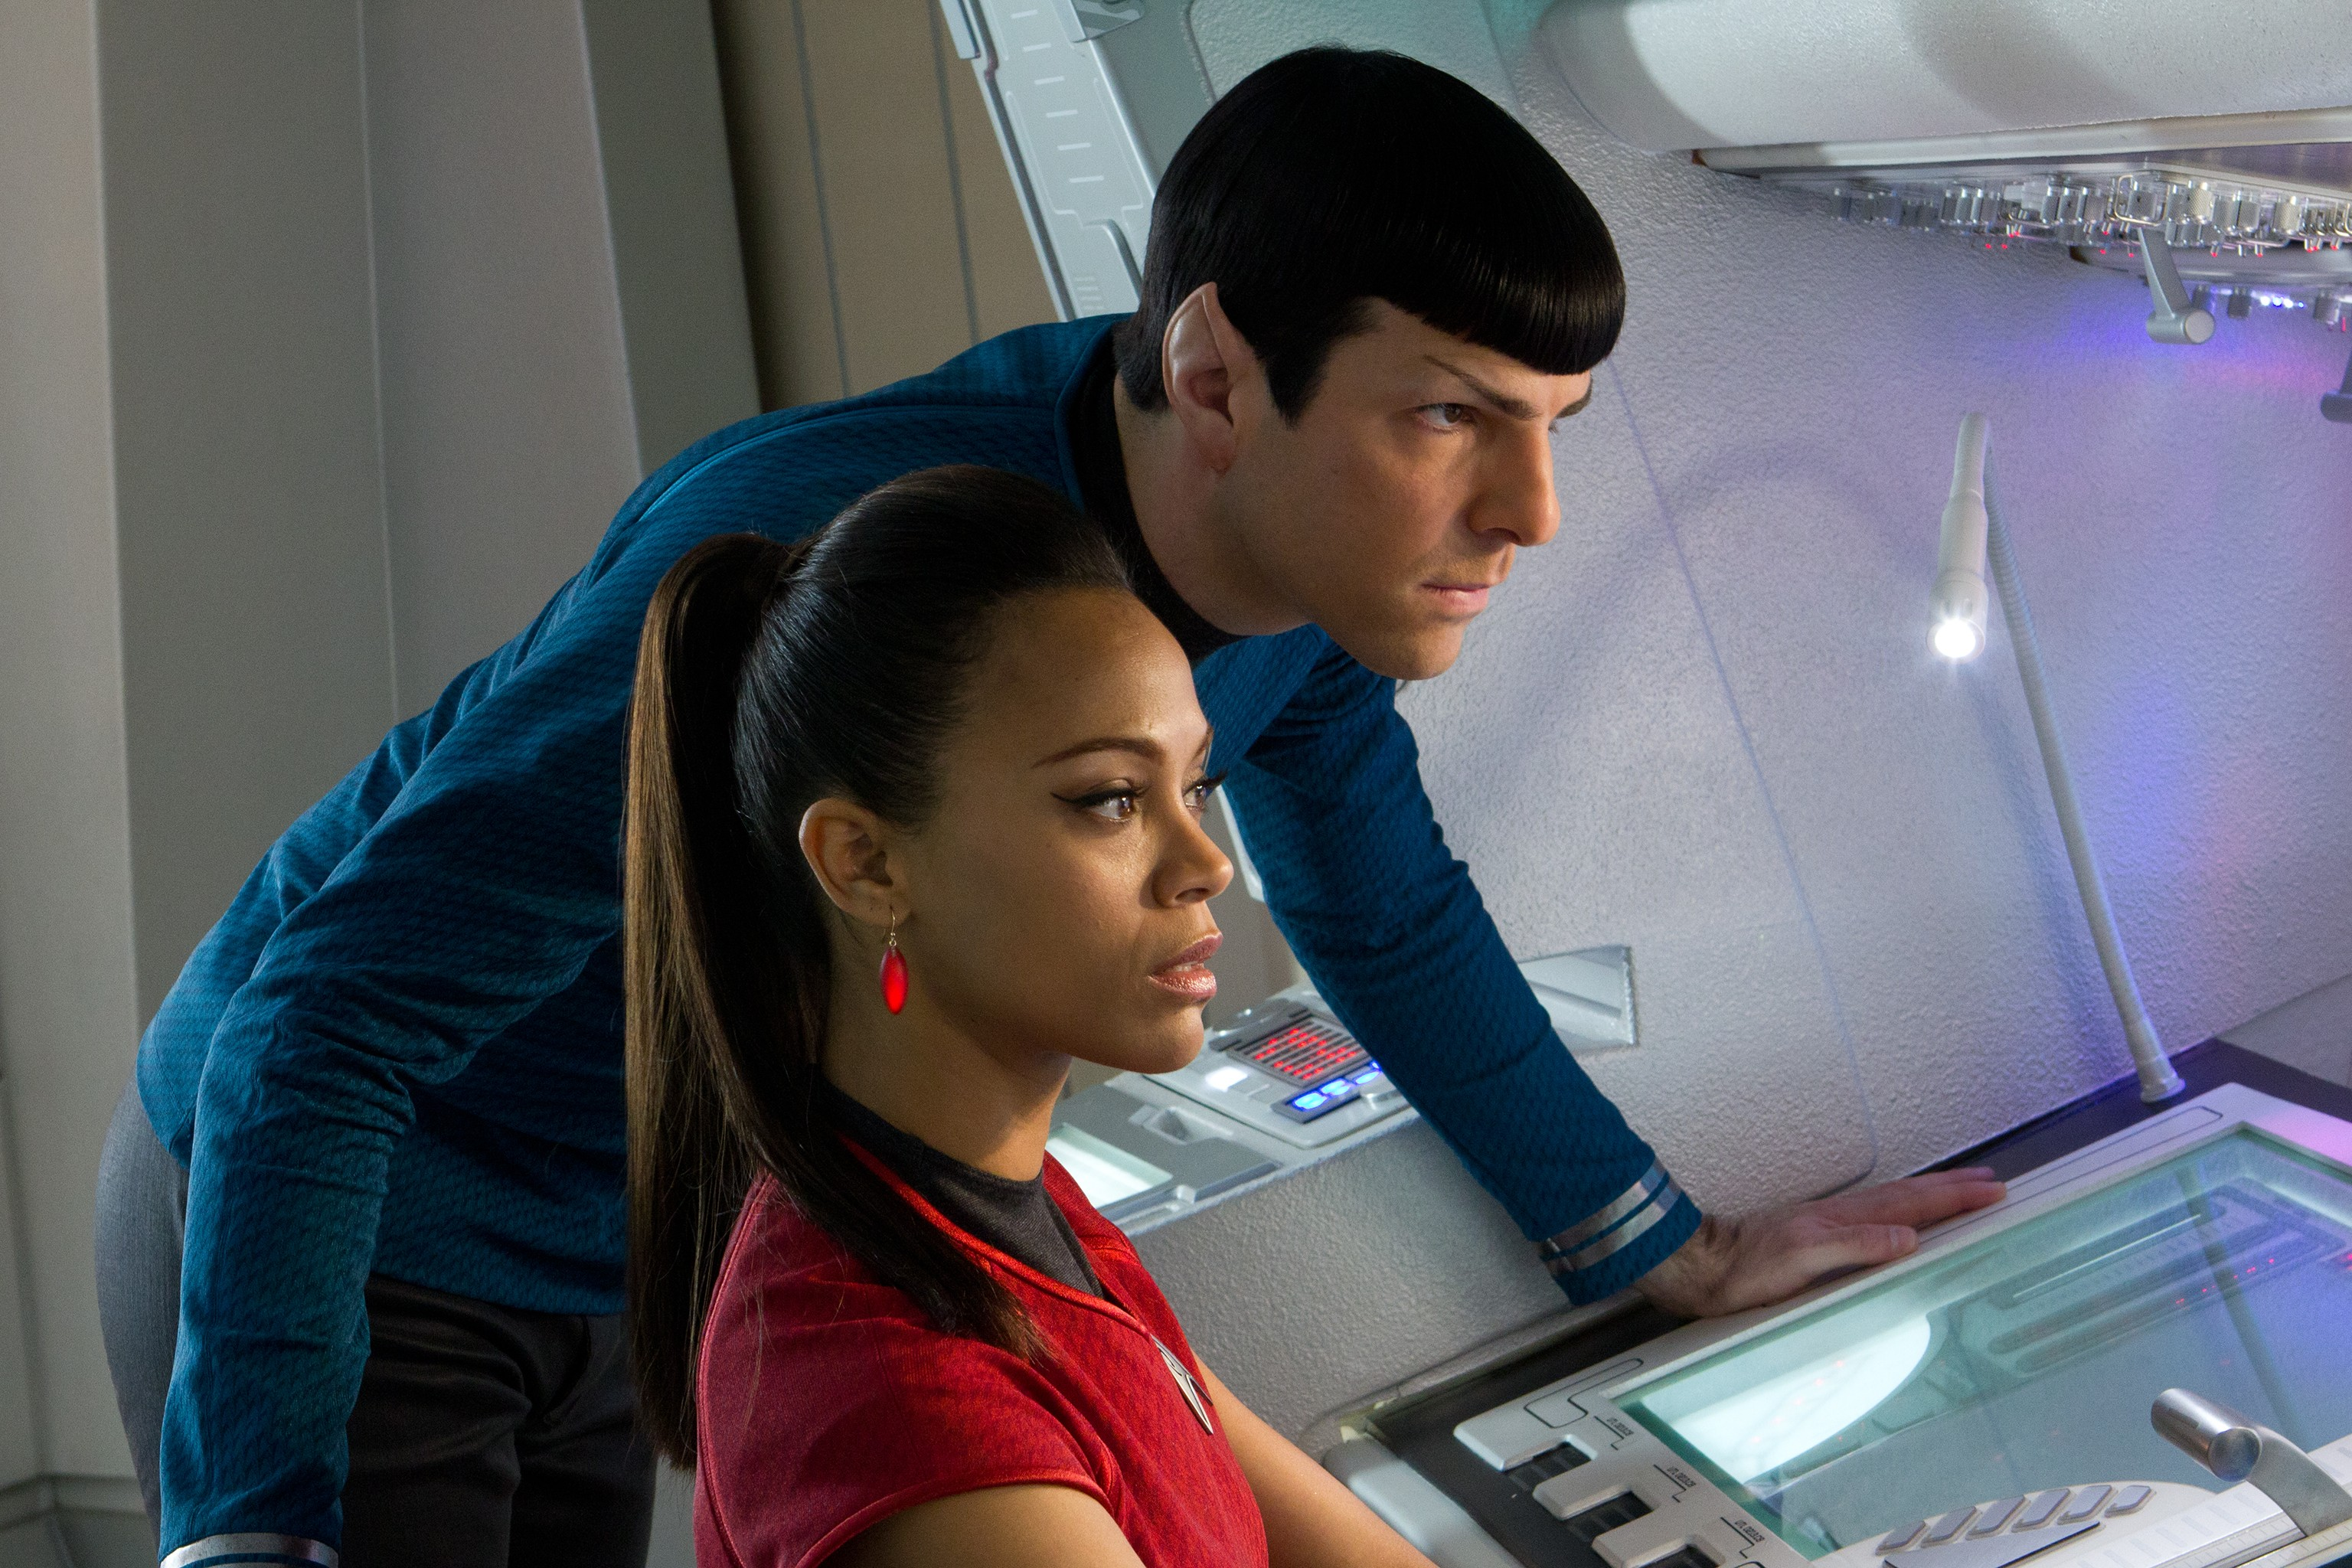 Boldly Going Wrong: Why There's No 'Star Trek' in 'Star Trek Into Darkness'